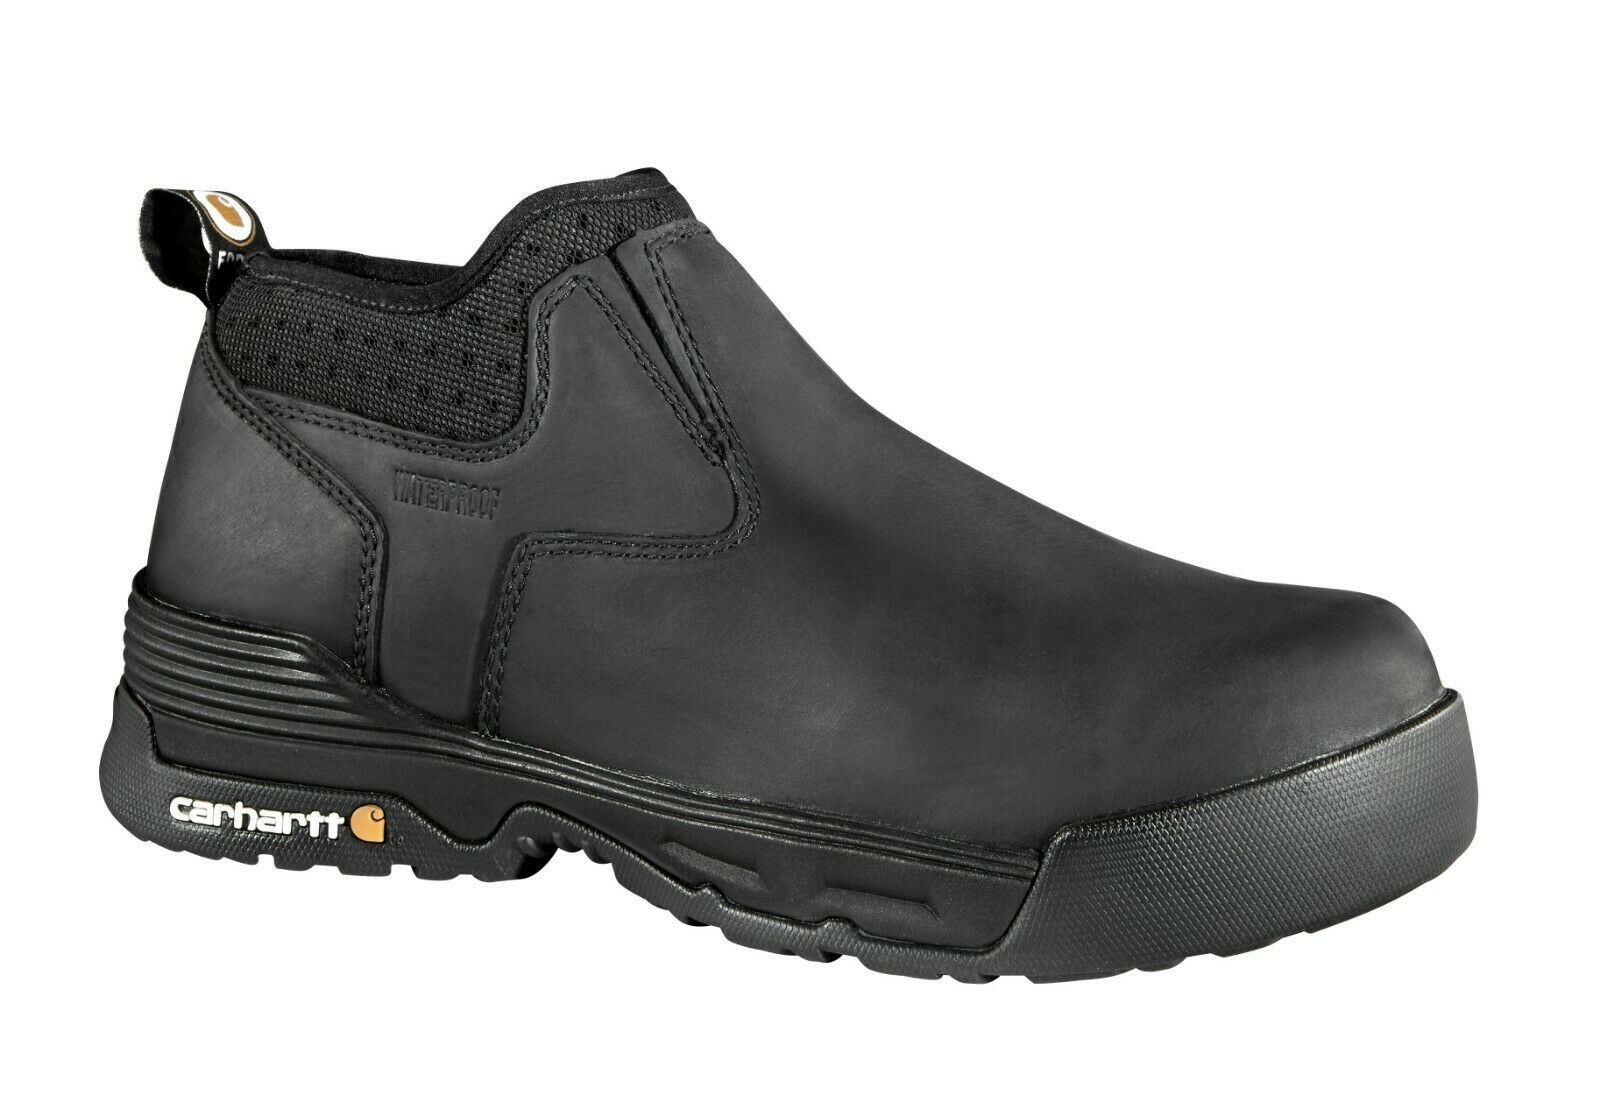 Carhartt CMA4311 para hombre Force 4  Composite Toe Slip On Impermeable Bota De Trabajo Zapatos